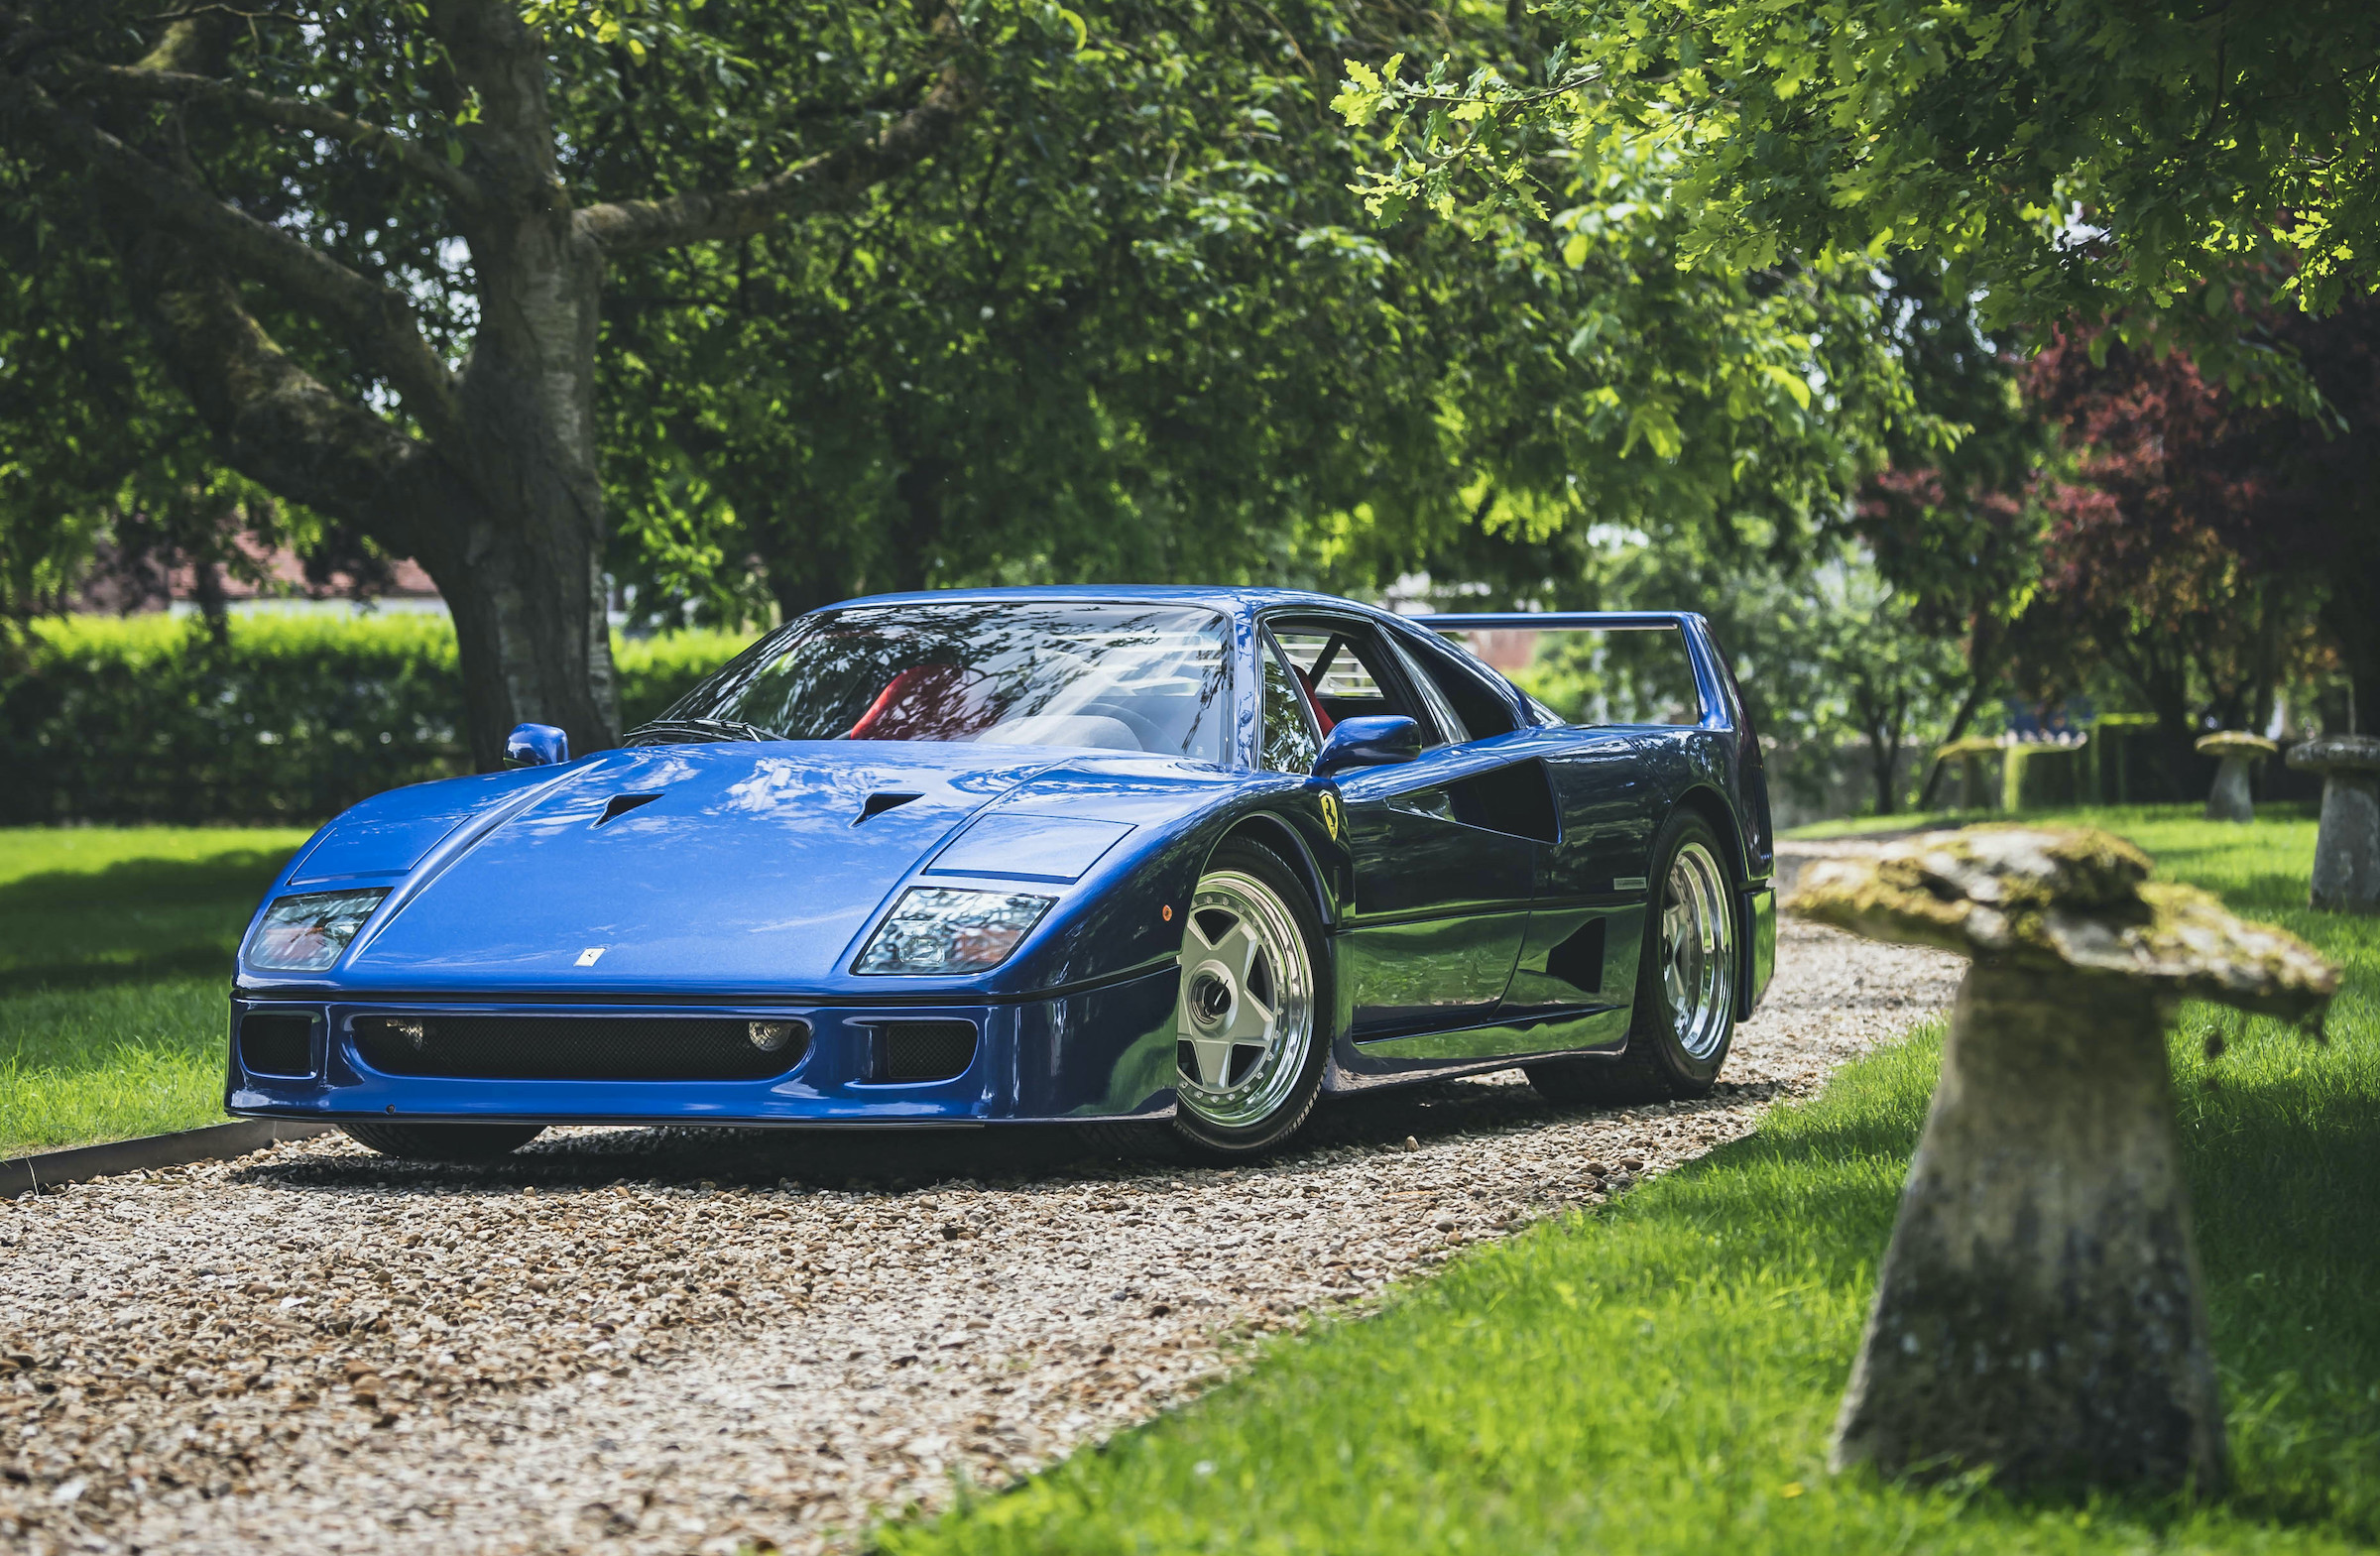 Feeling Blu? Famous F40 sets online auction record